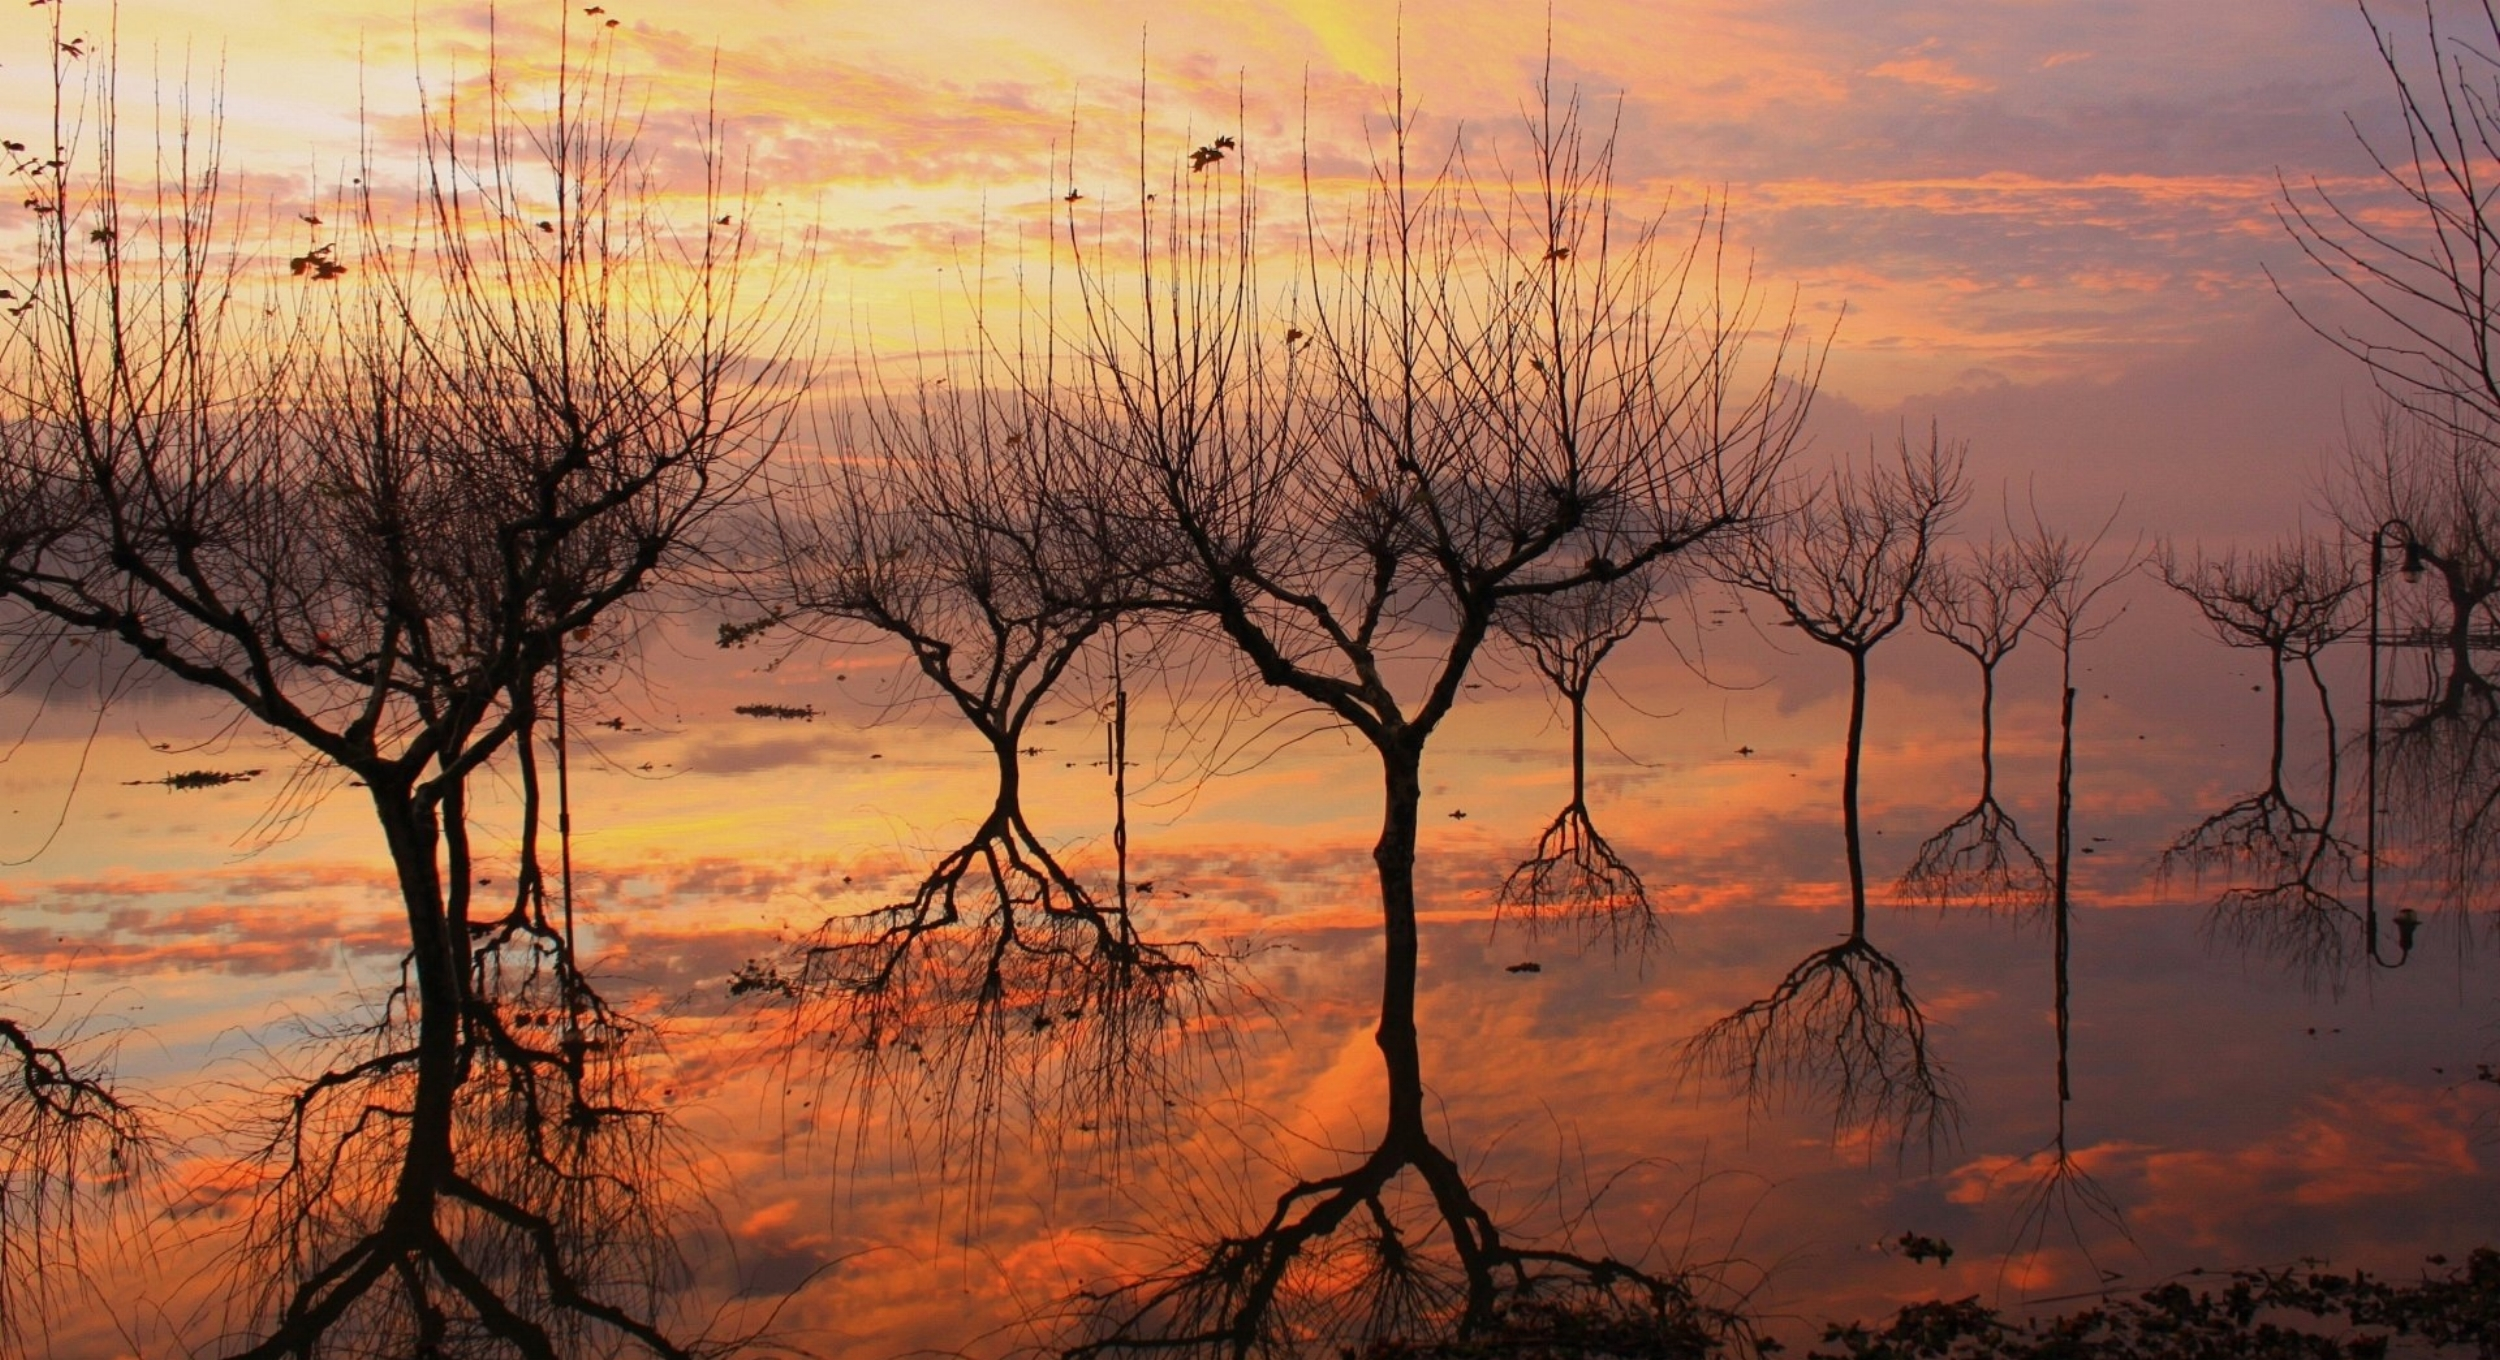 wallpaper-water-trees-mirror-1920-x-1080-full-hd.jpg